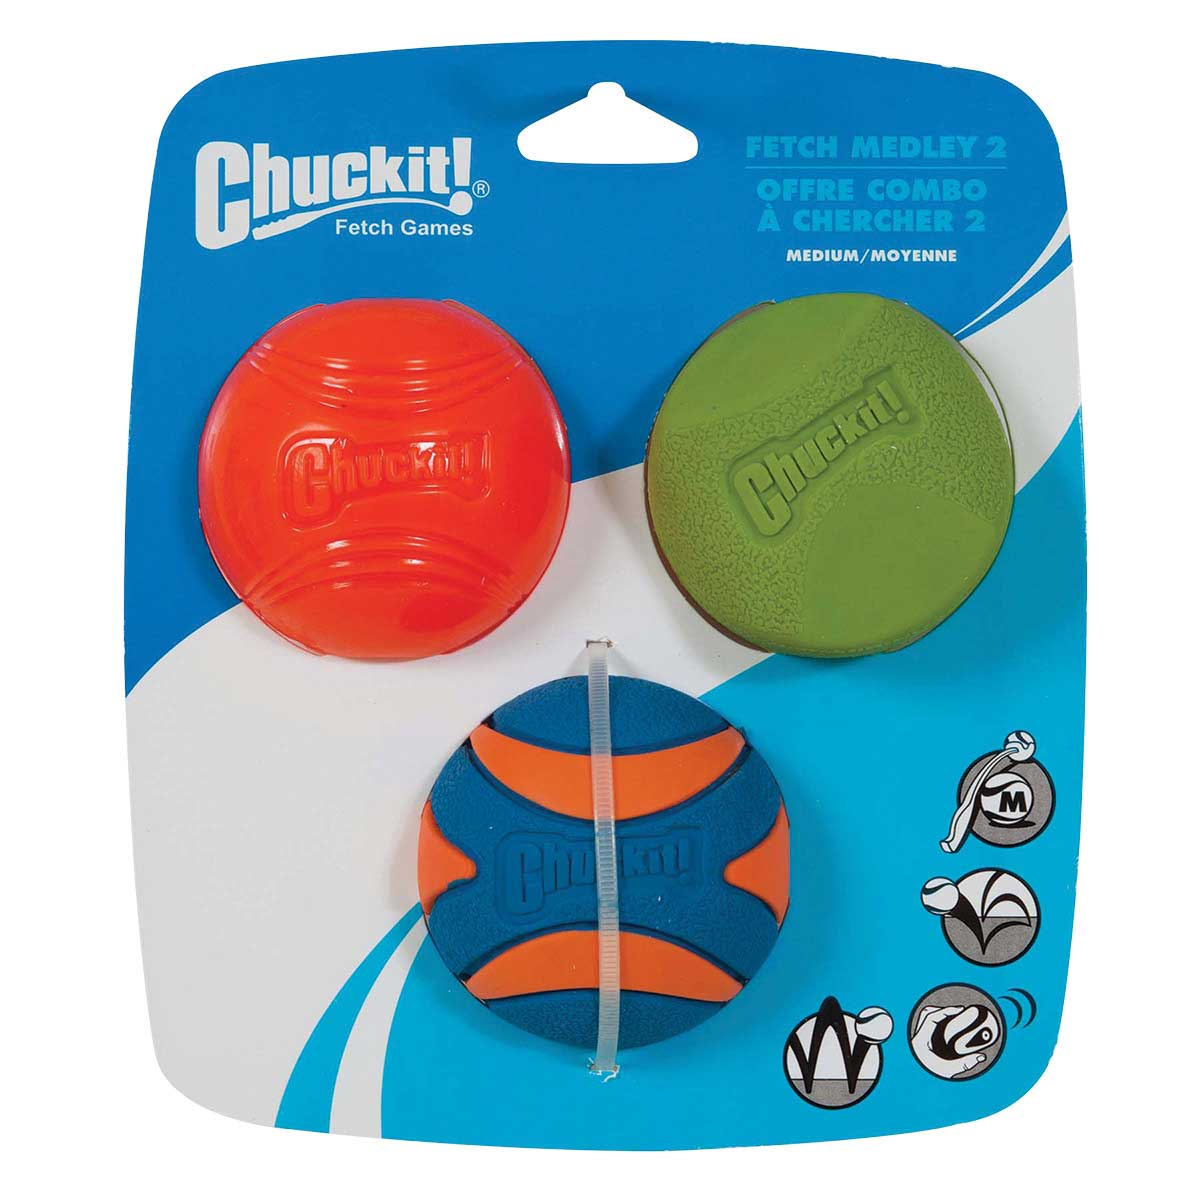 Chuckit! Medley Ball Set - Medium Size - Includes three Balls